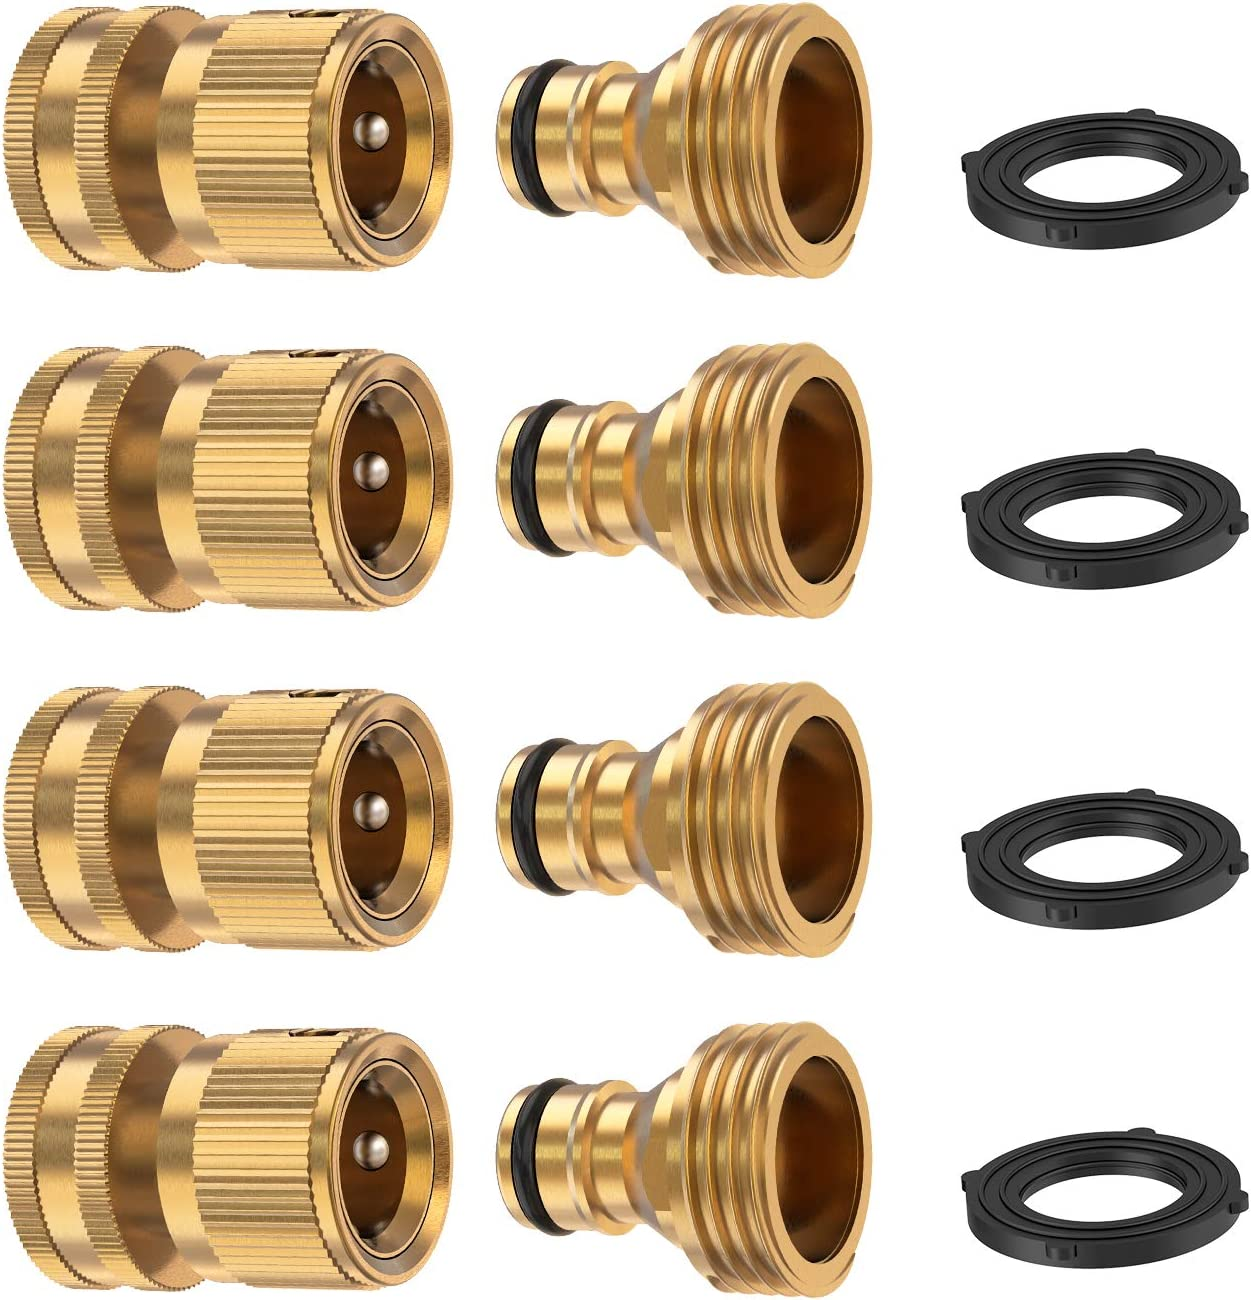 Kupton Garden Hose Quick Connect Fittings, 3/4 Inch GHT Brass Quick Release Water Hose Connector Male and Female Set (4 Sets)